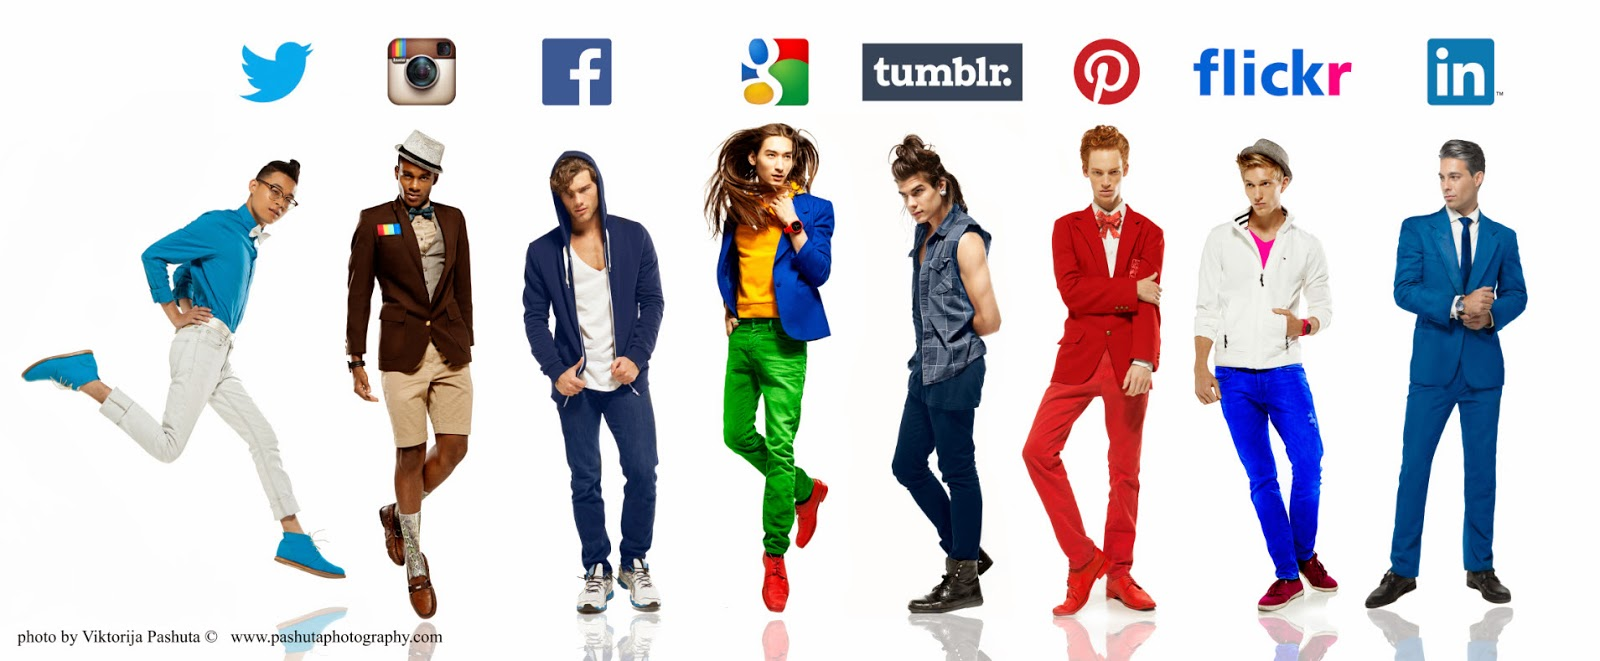 What if guys were social networks? Photo : Viktorija Pashuta